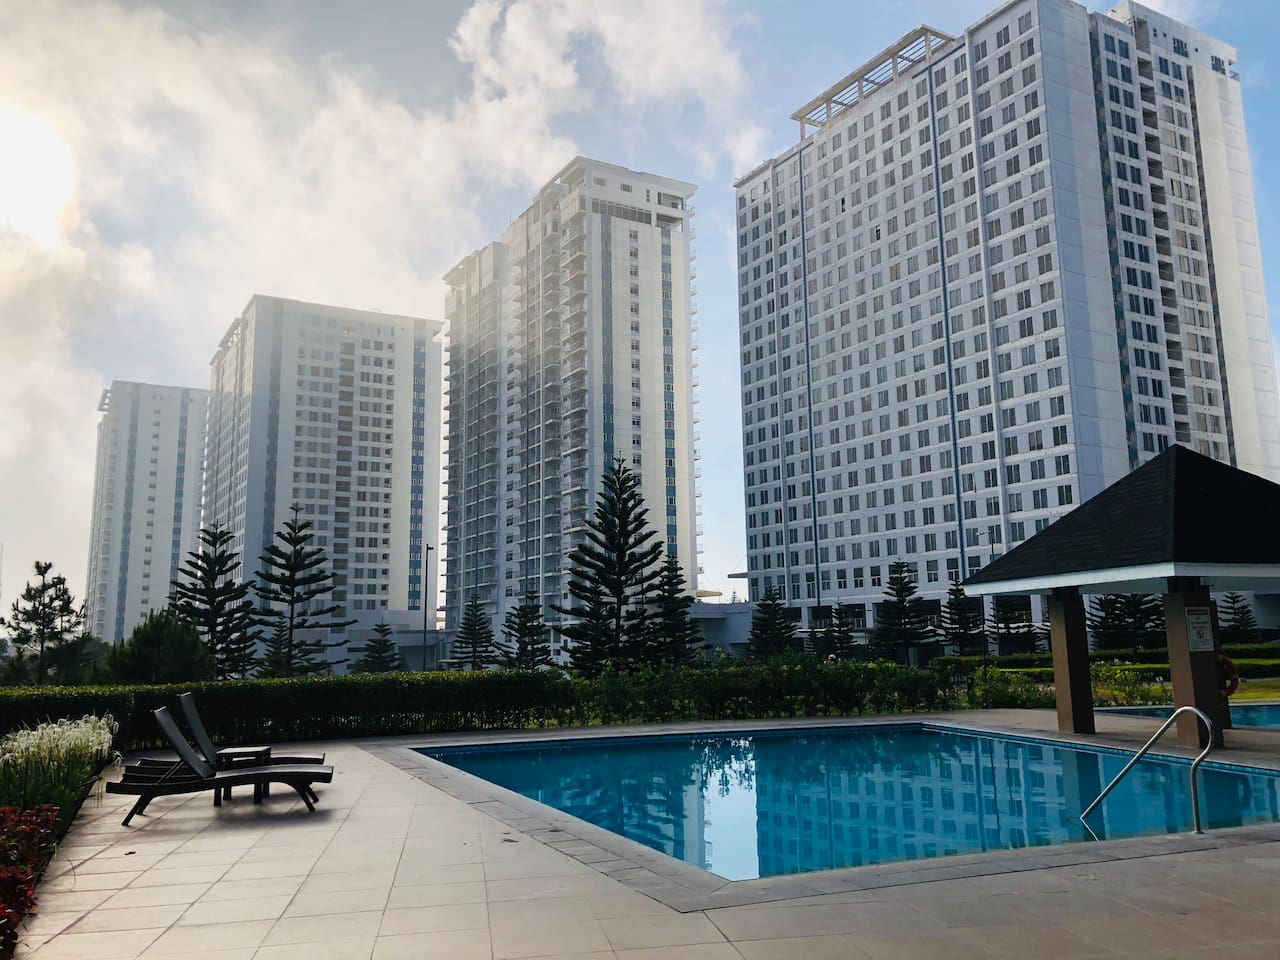 Picturesque view of Wind Residences Towers and Outdoor Swimming Pool